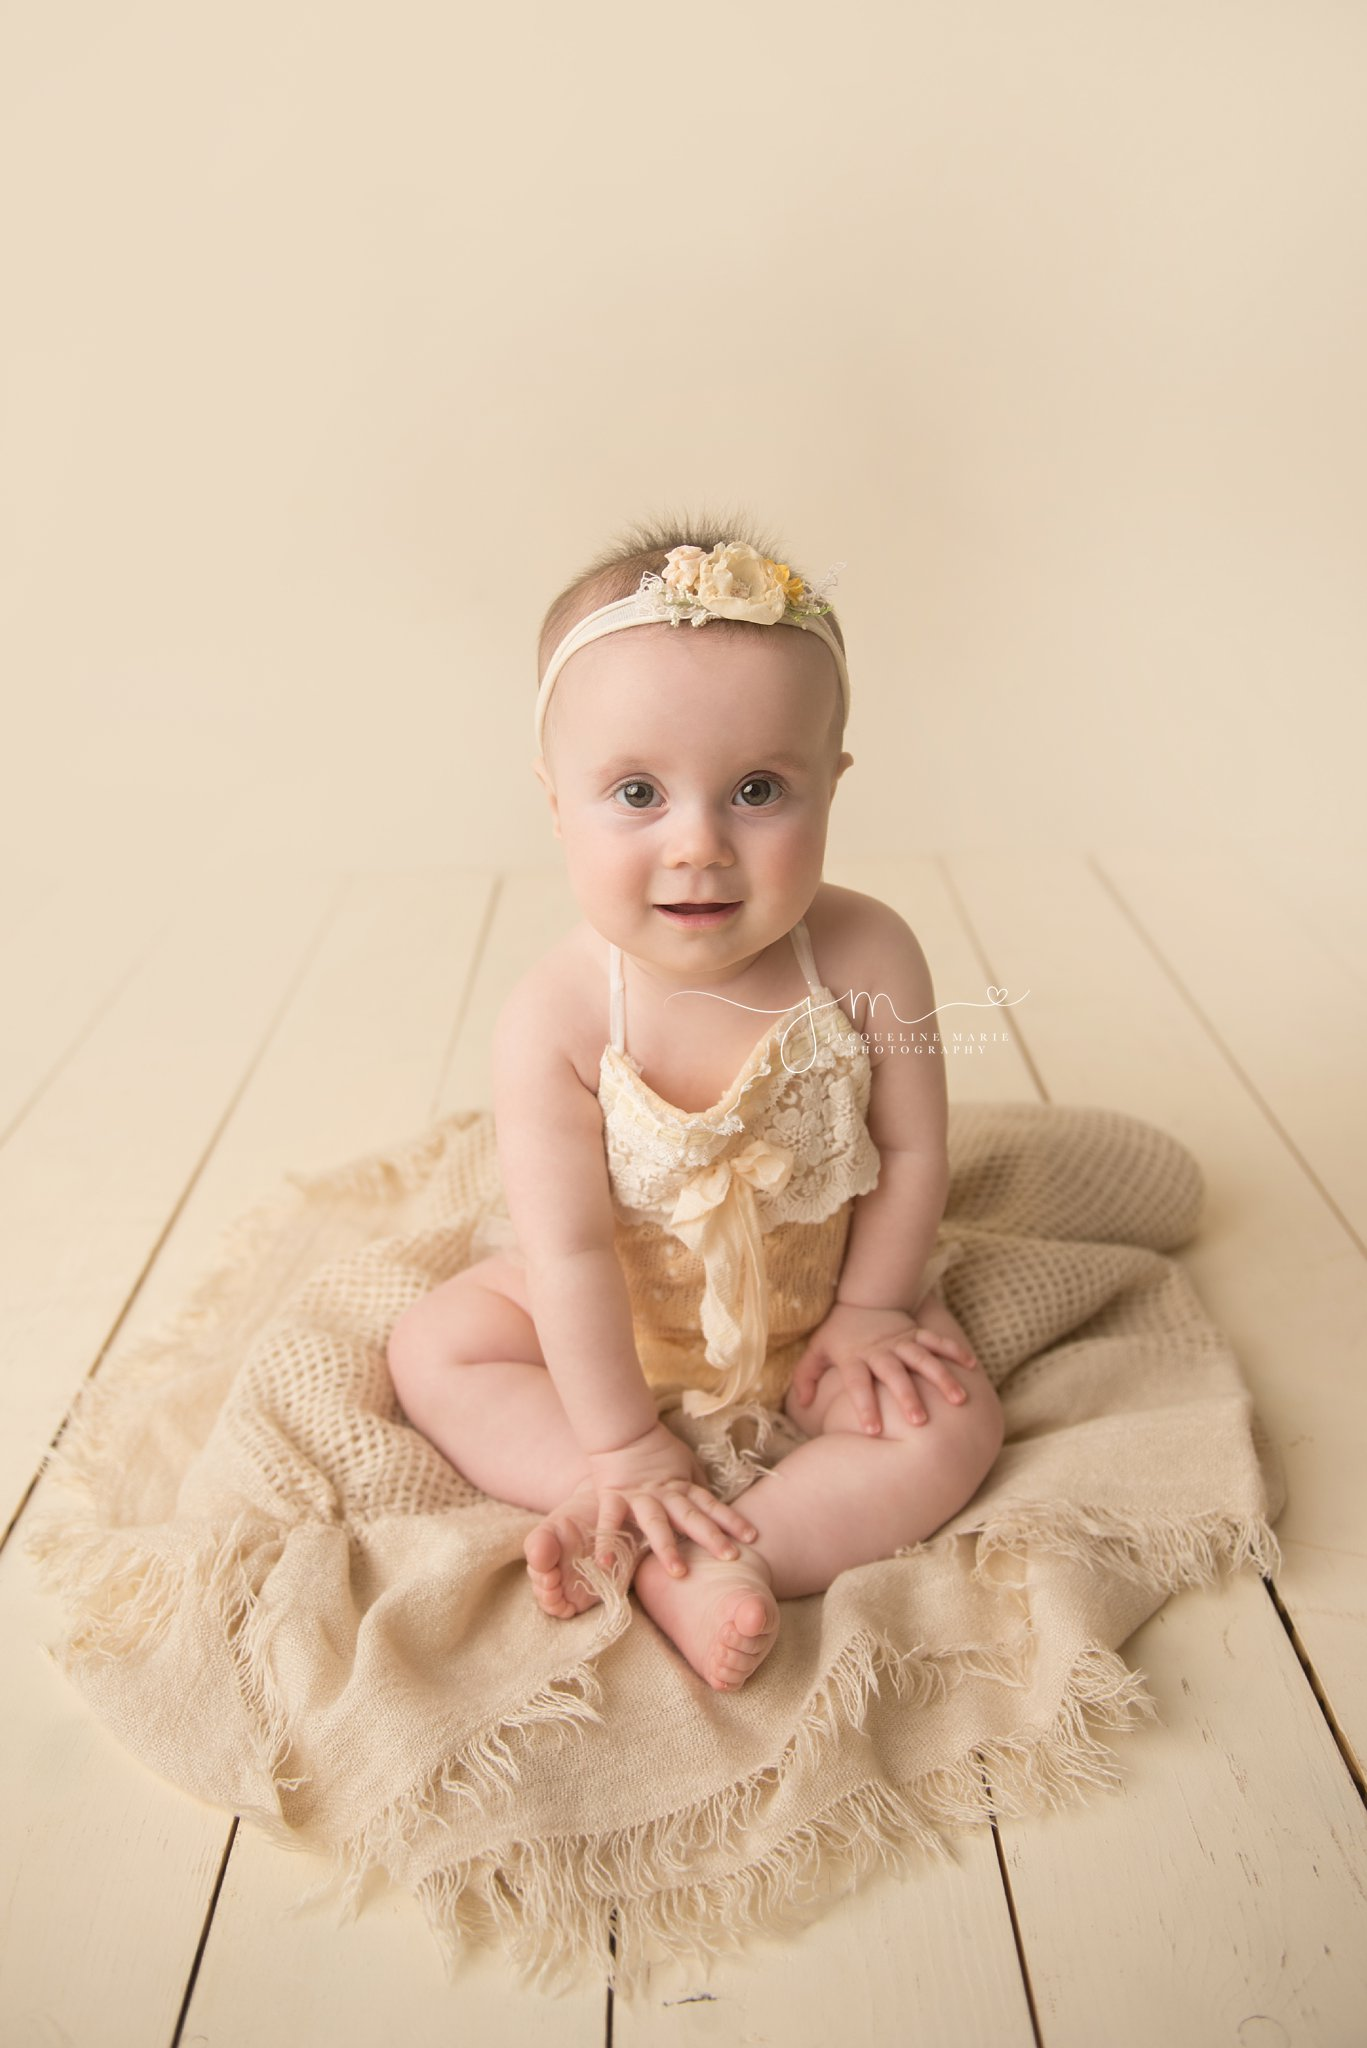 columbus ohio baby girl wears yellow romper while sitting on tan scarf layer at photography studio for 6 month milestone pictures